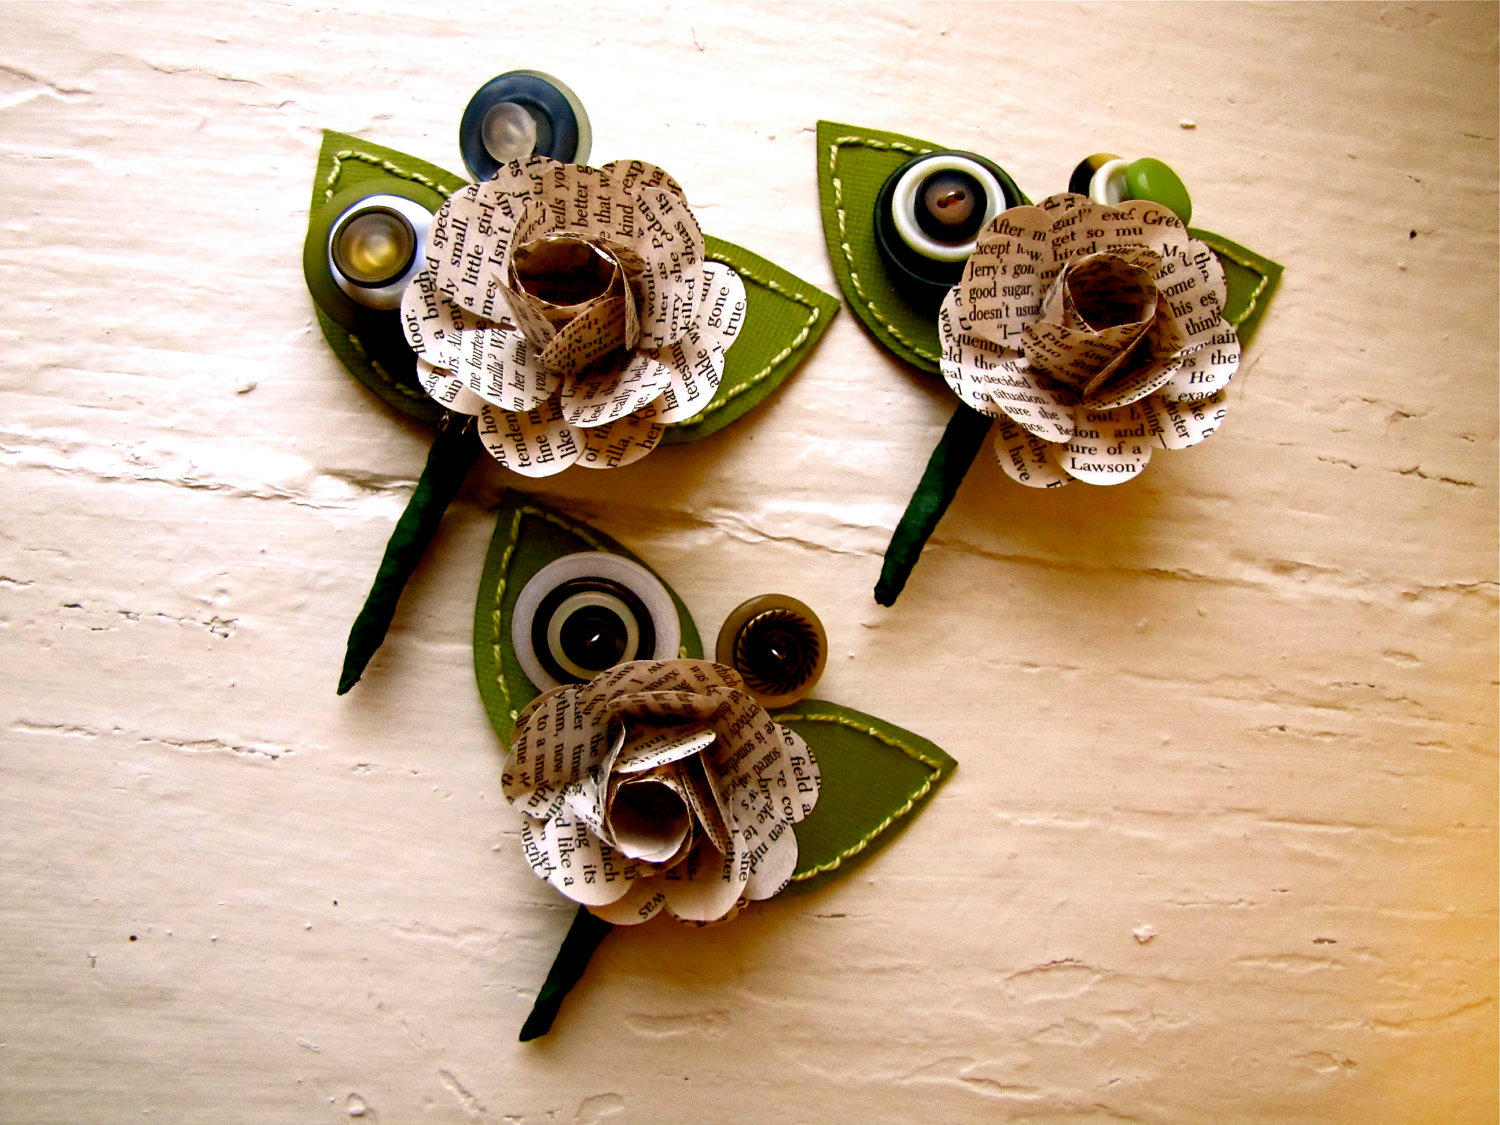 Three green and book page rose paper flower and button boutonniere three green and book page rose paper flower and button boutonniere for wedding or event by the little red button dhlflorist Image collections